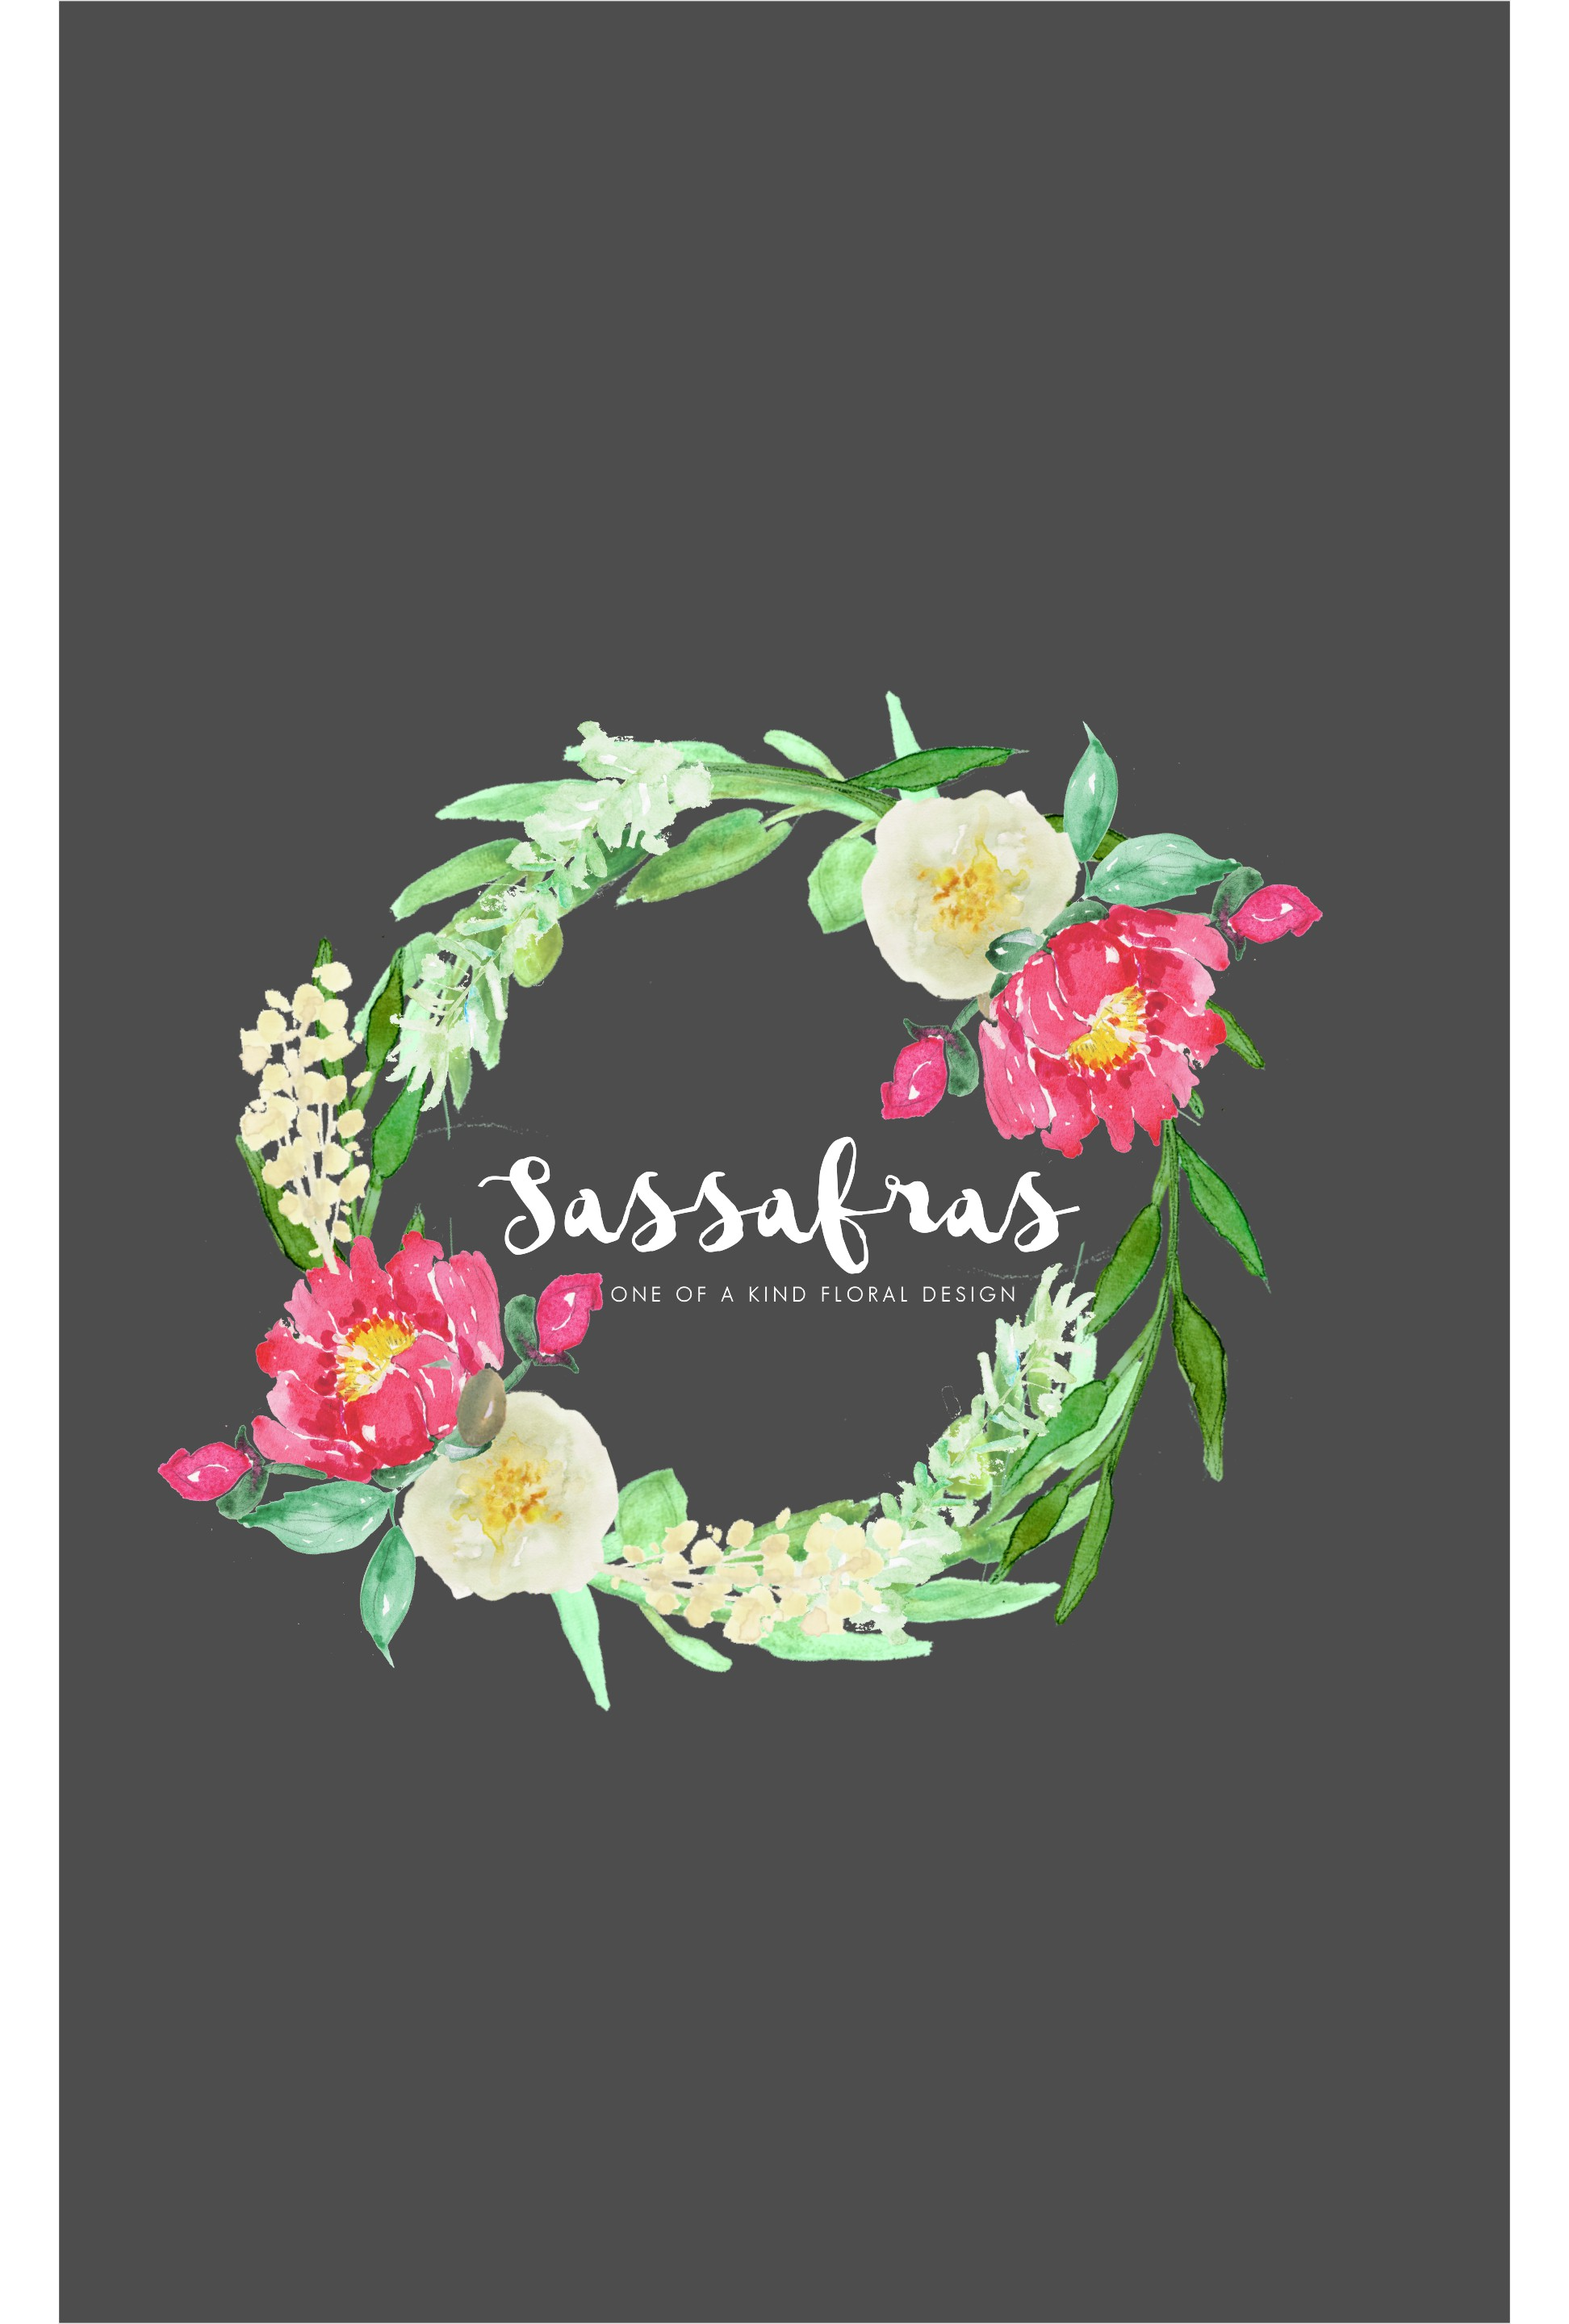 Create a one of a kind floral logo for organic, high end florist